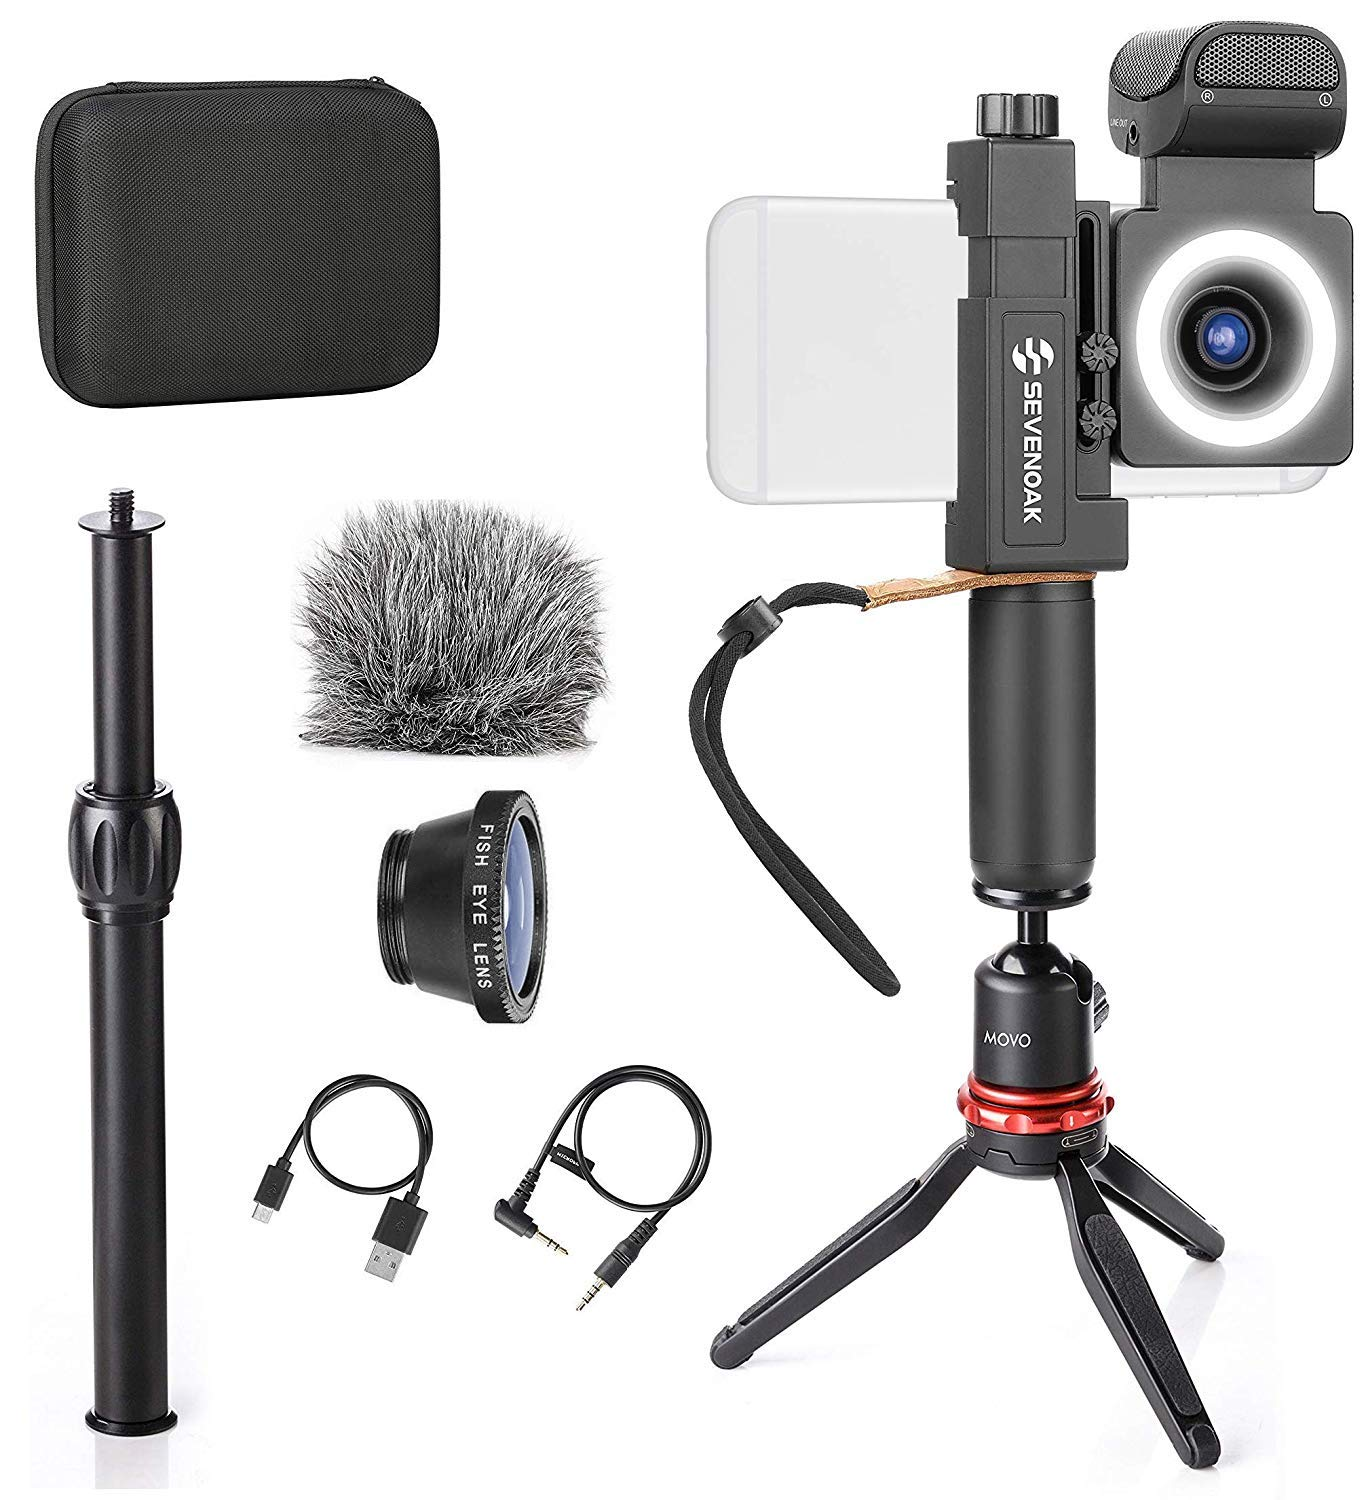 Movo SmartCine Smartphone Video Kit Handheld/Tabletop Bundle - All-in-One Grip Rig, Tripod, Microphone, Light, Lenses - for Vlogging, Makeup, Tutorials, YouTube - Compatible with iPhone and Android by Movo